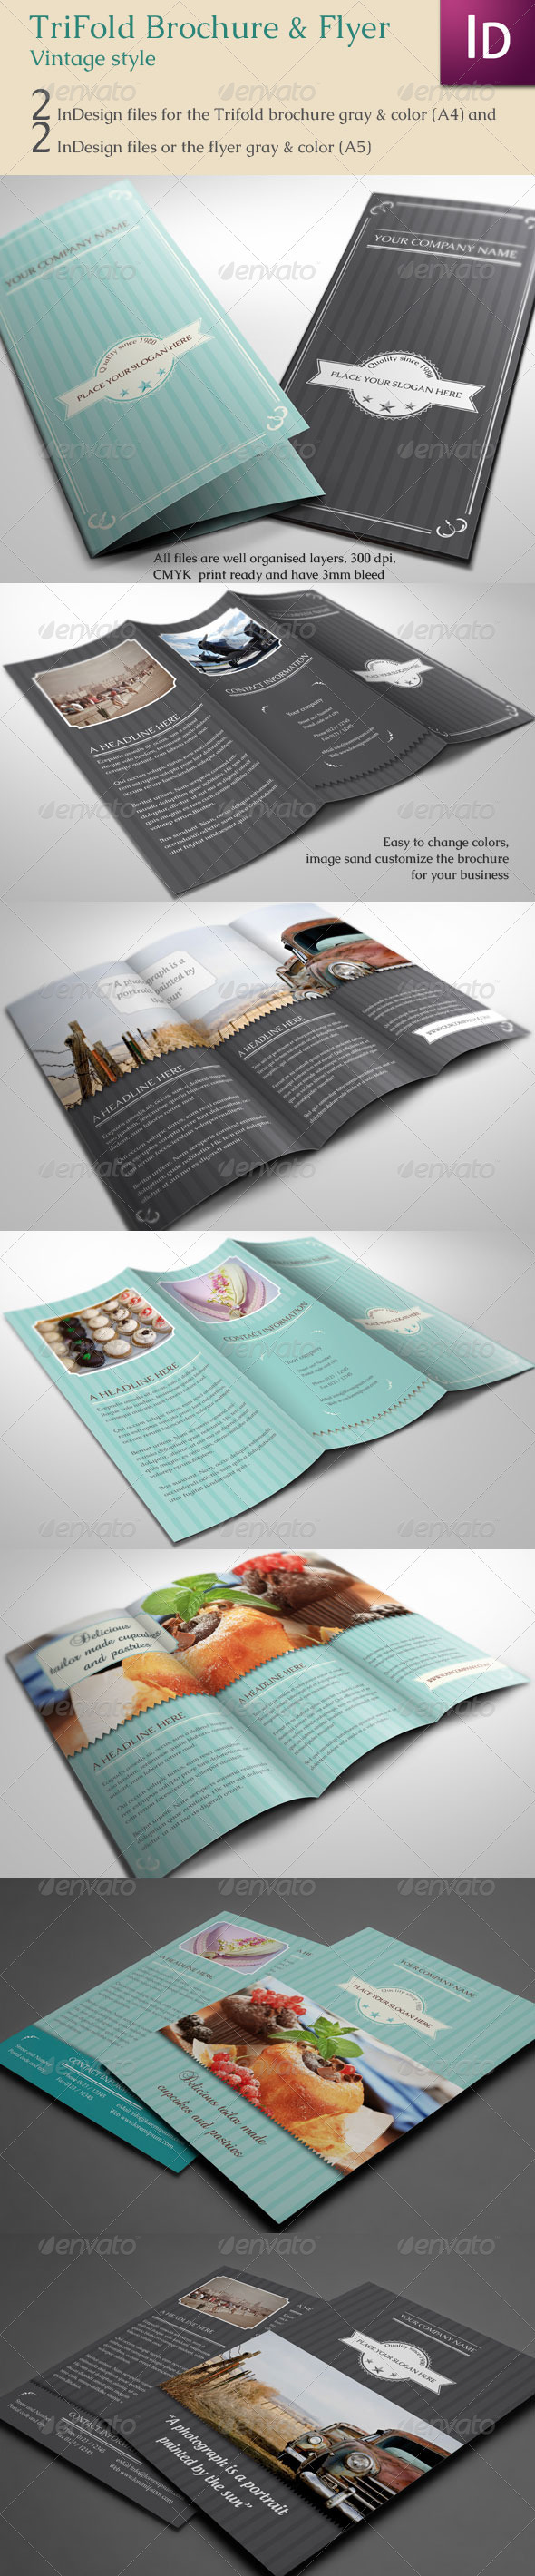 Trifold Brochure & Flyer Vintage - Corporate Brochures